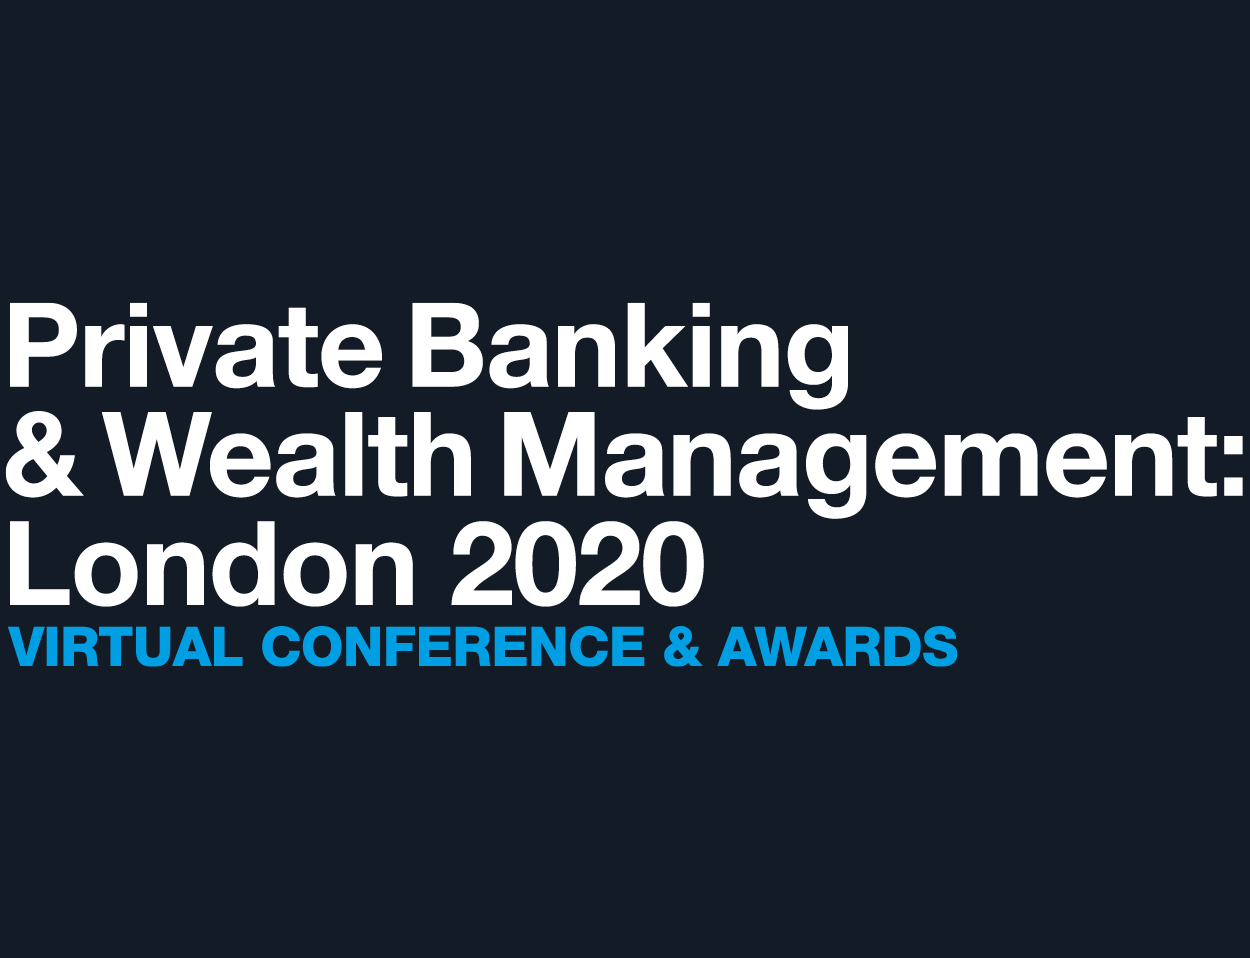 Private Banking & Wealth Management: London 2020 Virtual Conference and Awards